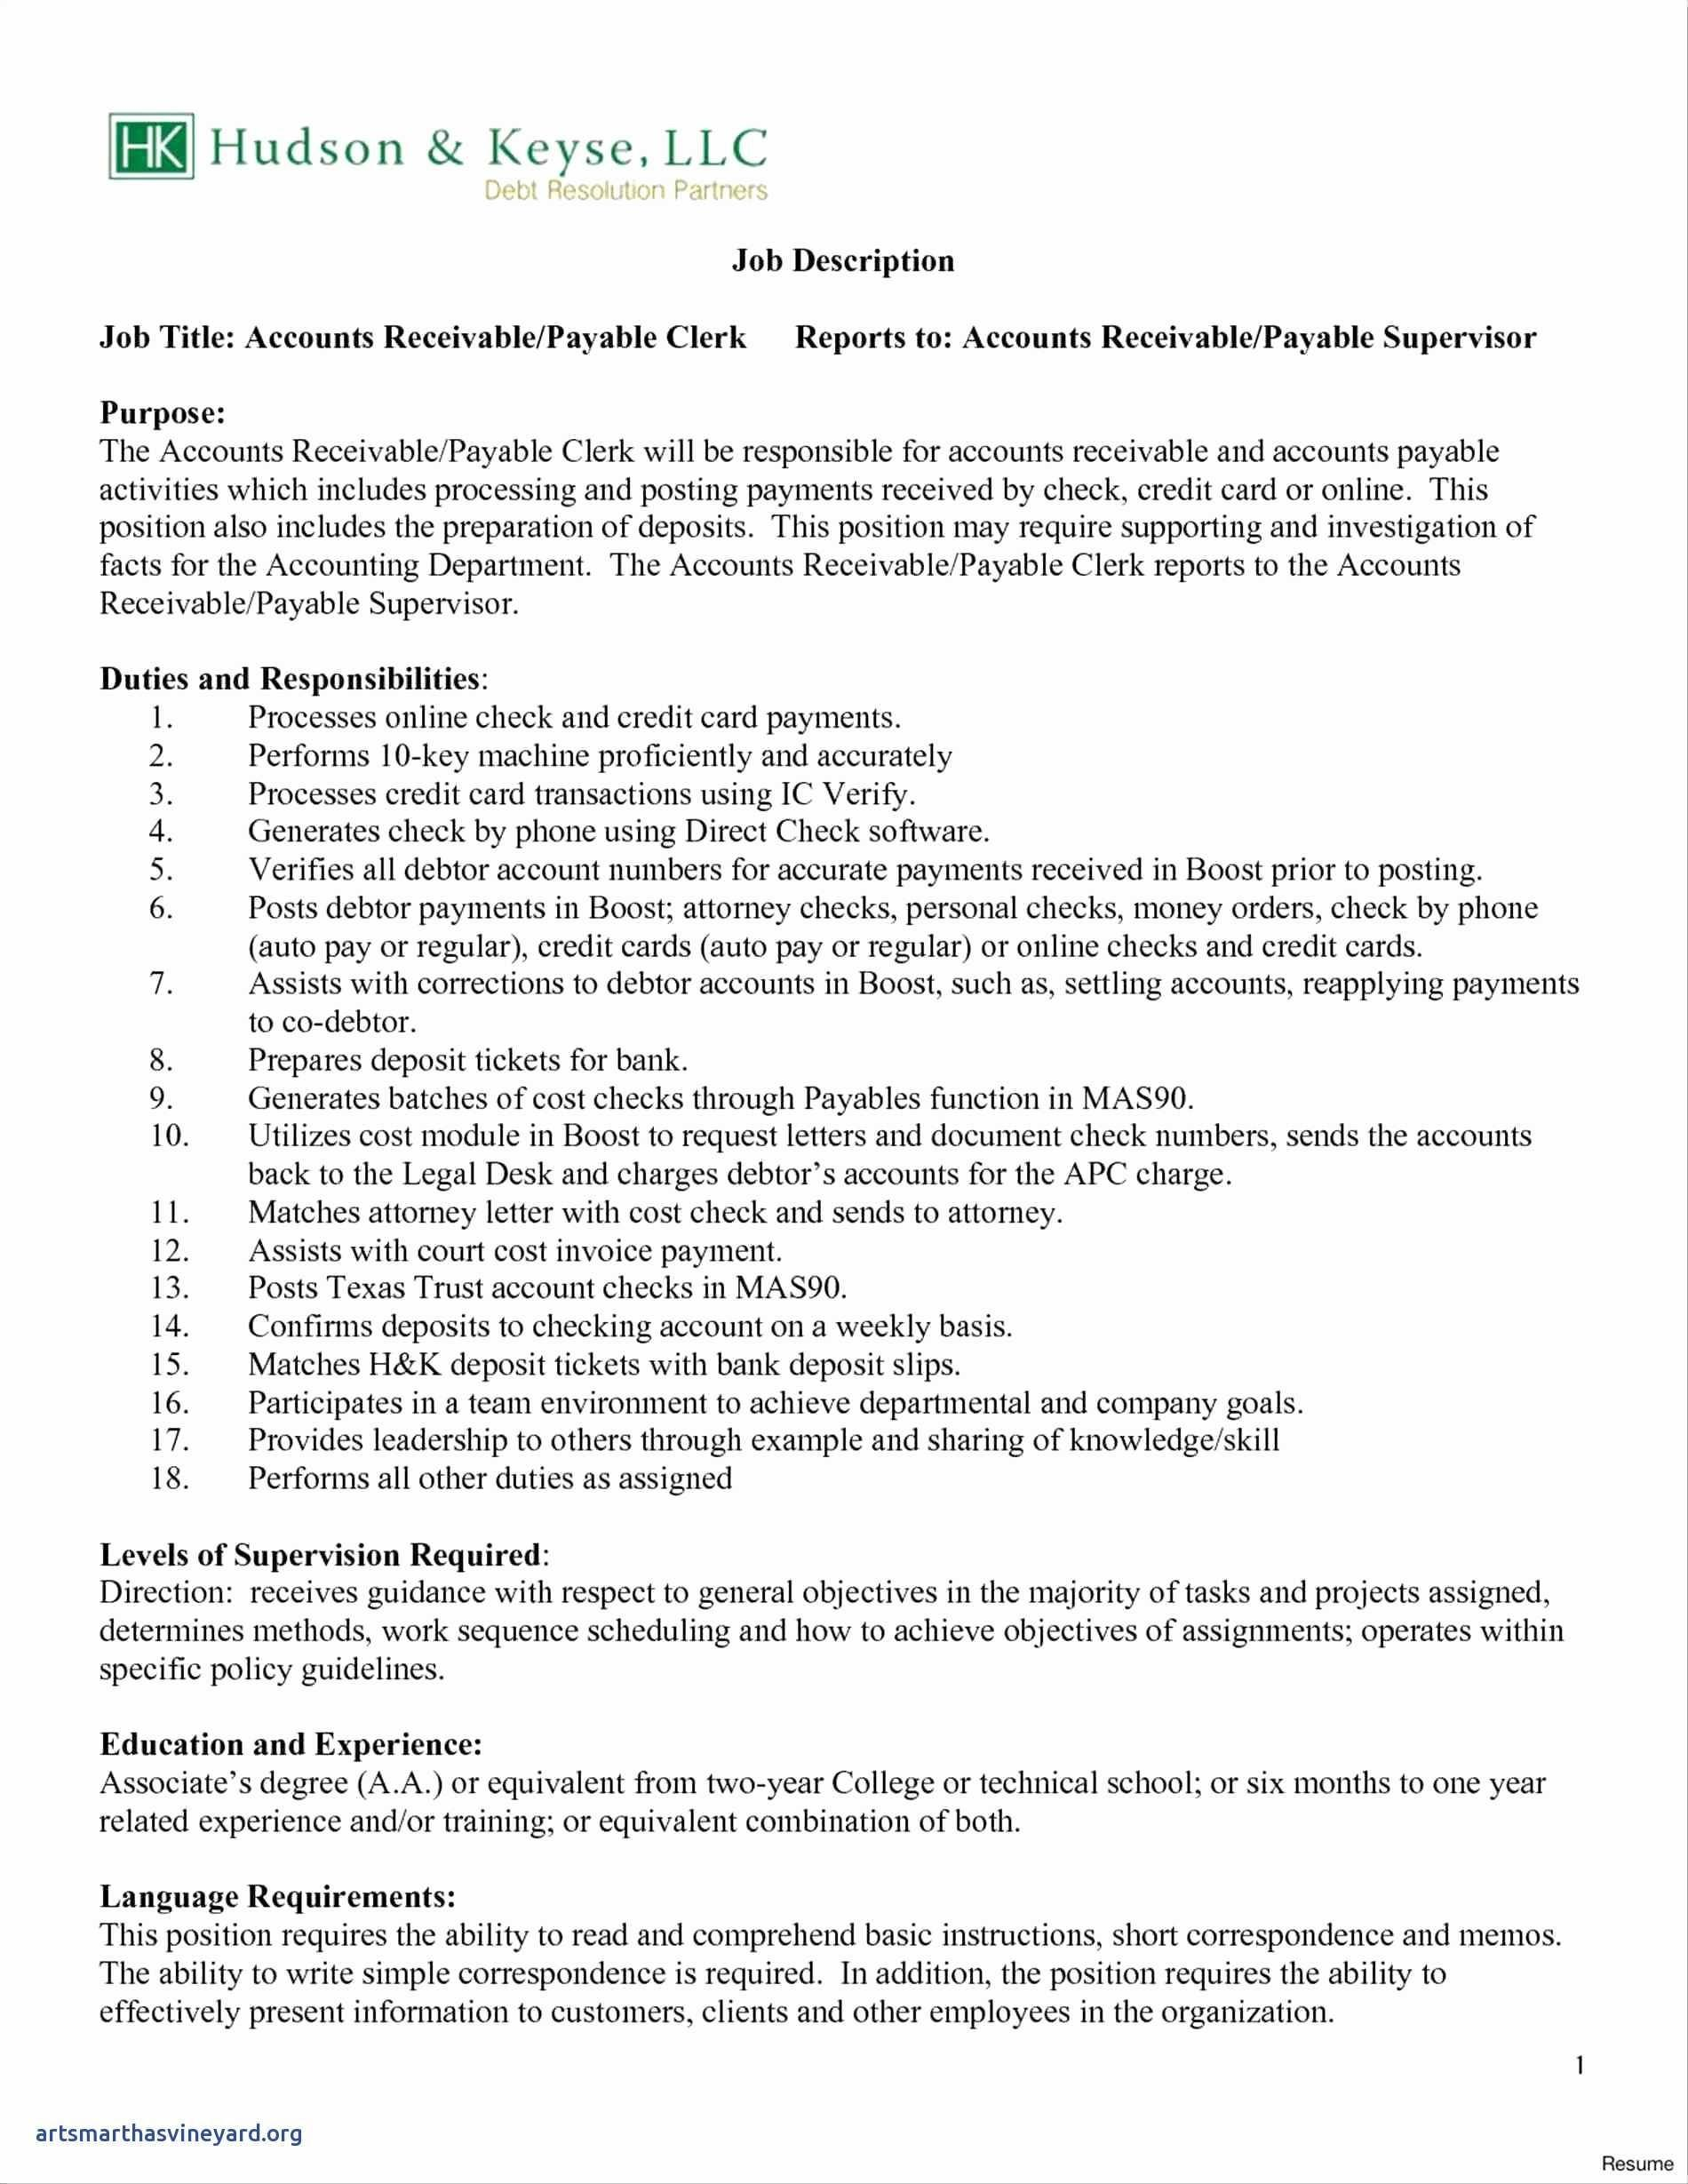 95 Stunning Accounts Receivable Resume Objective with Graphics